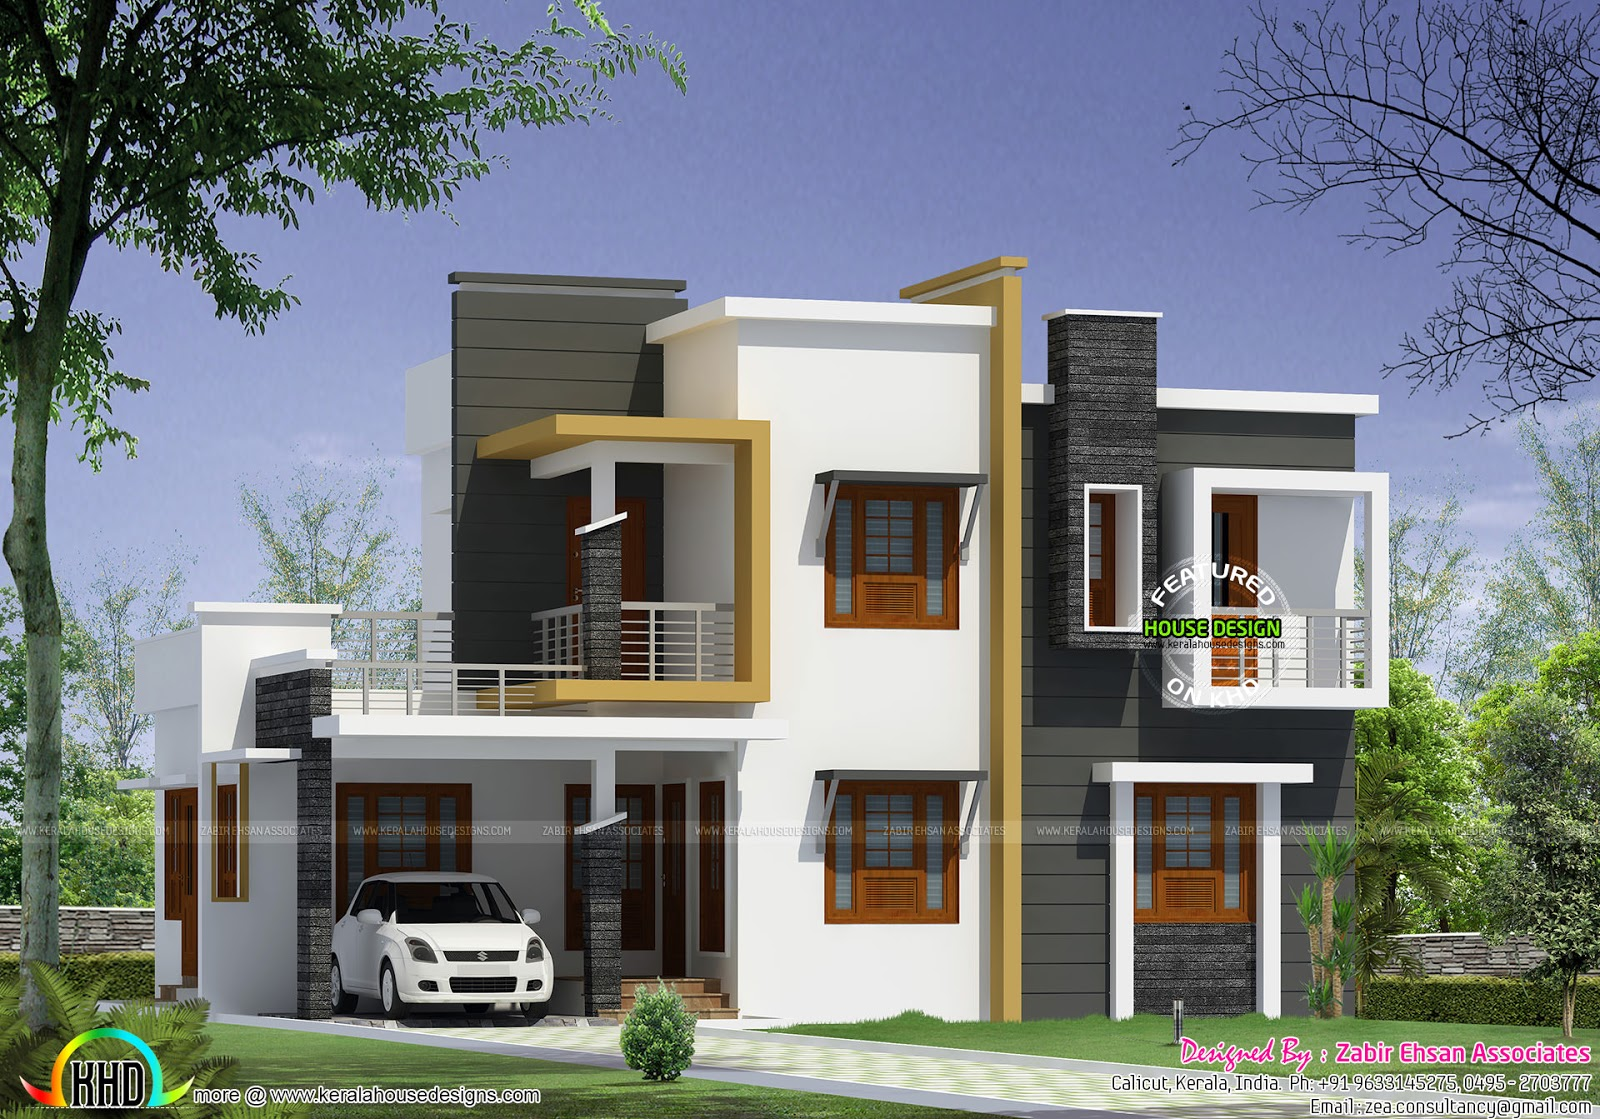 Box type modern house plan kerala home design and floor for New house plans